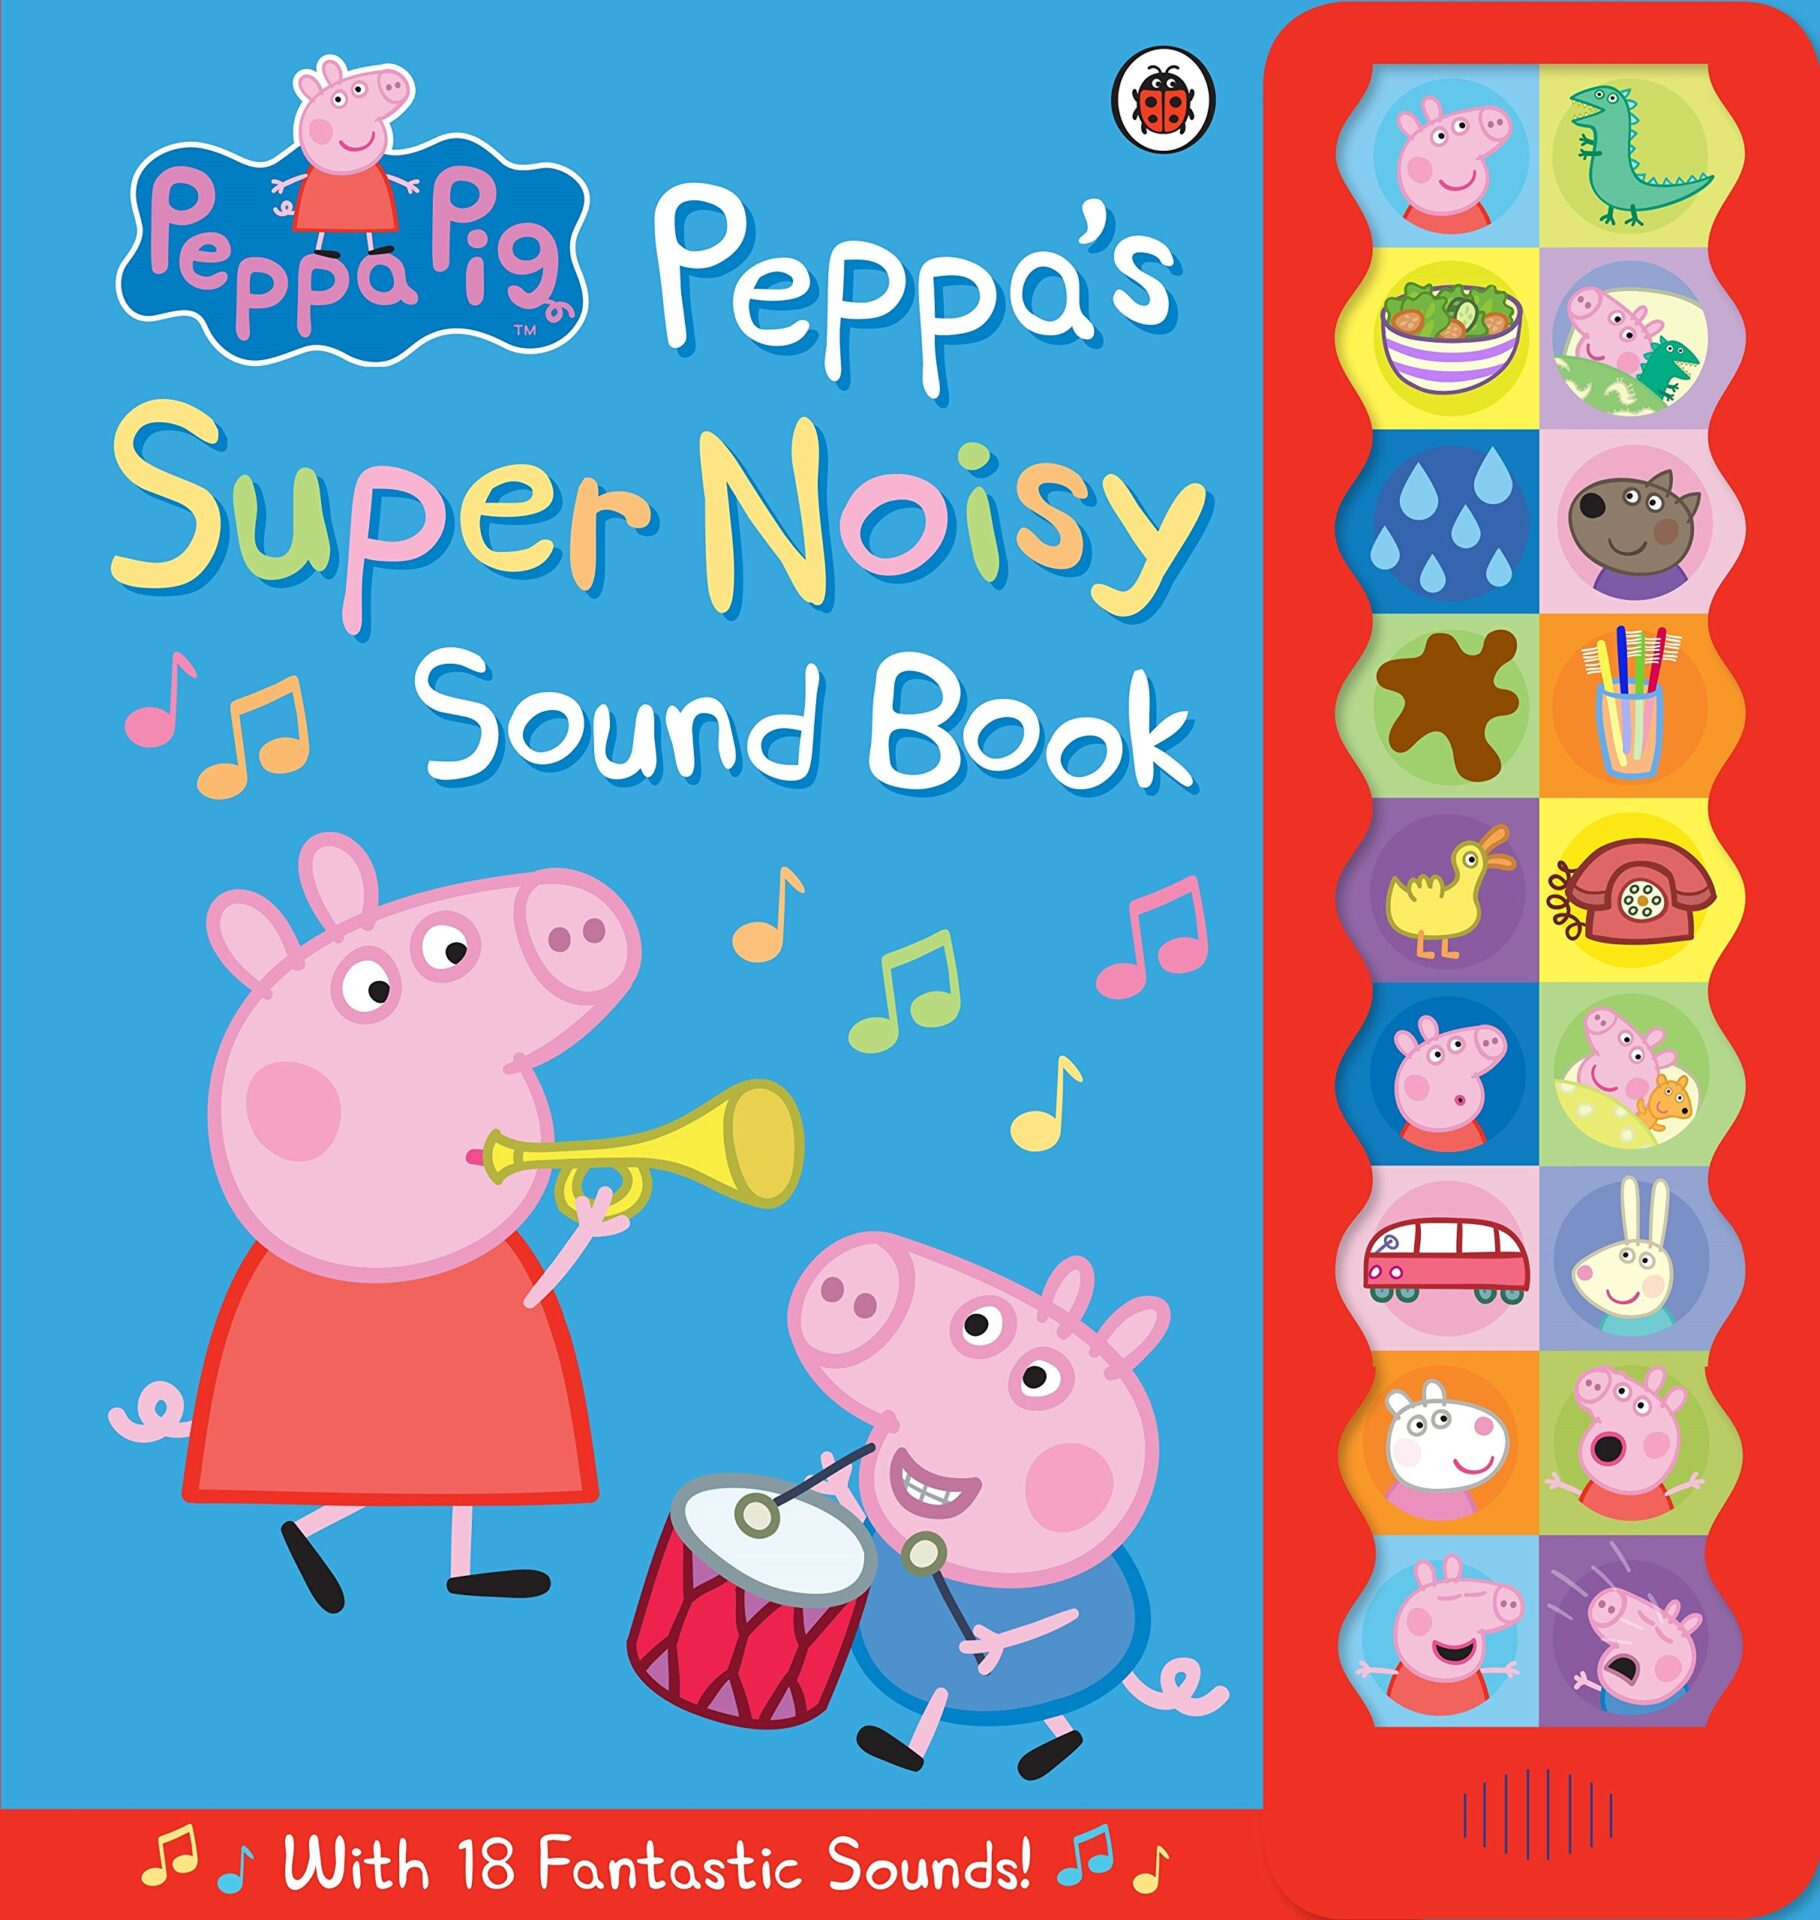 Peppa Pig Peppas Super Noisy Sound Book for 3 year old kids